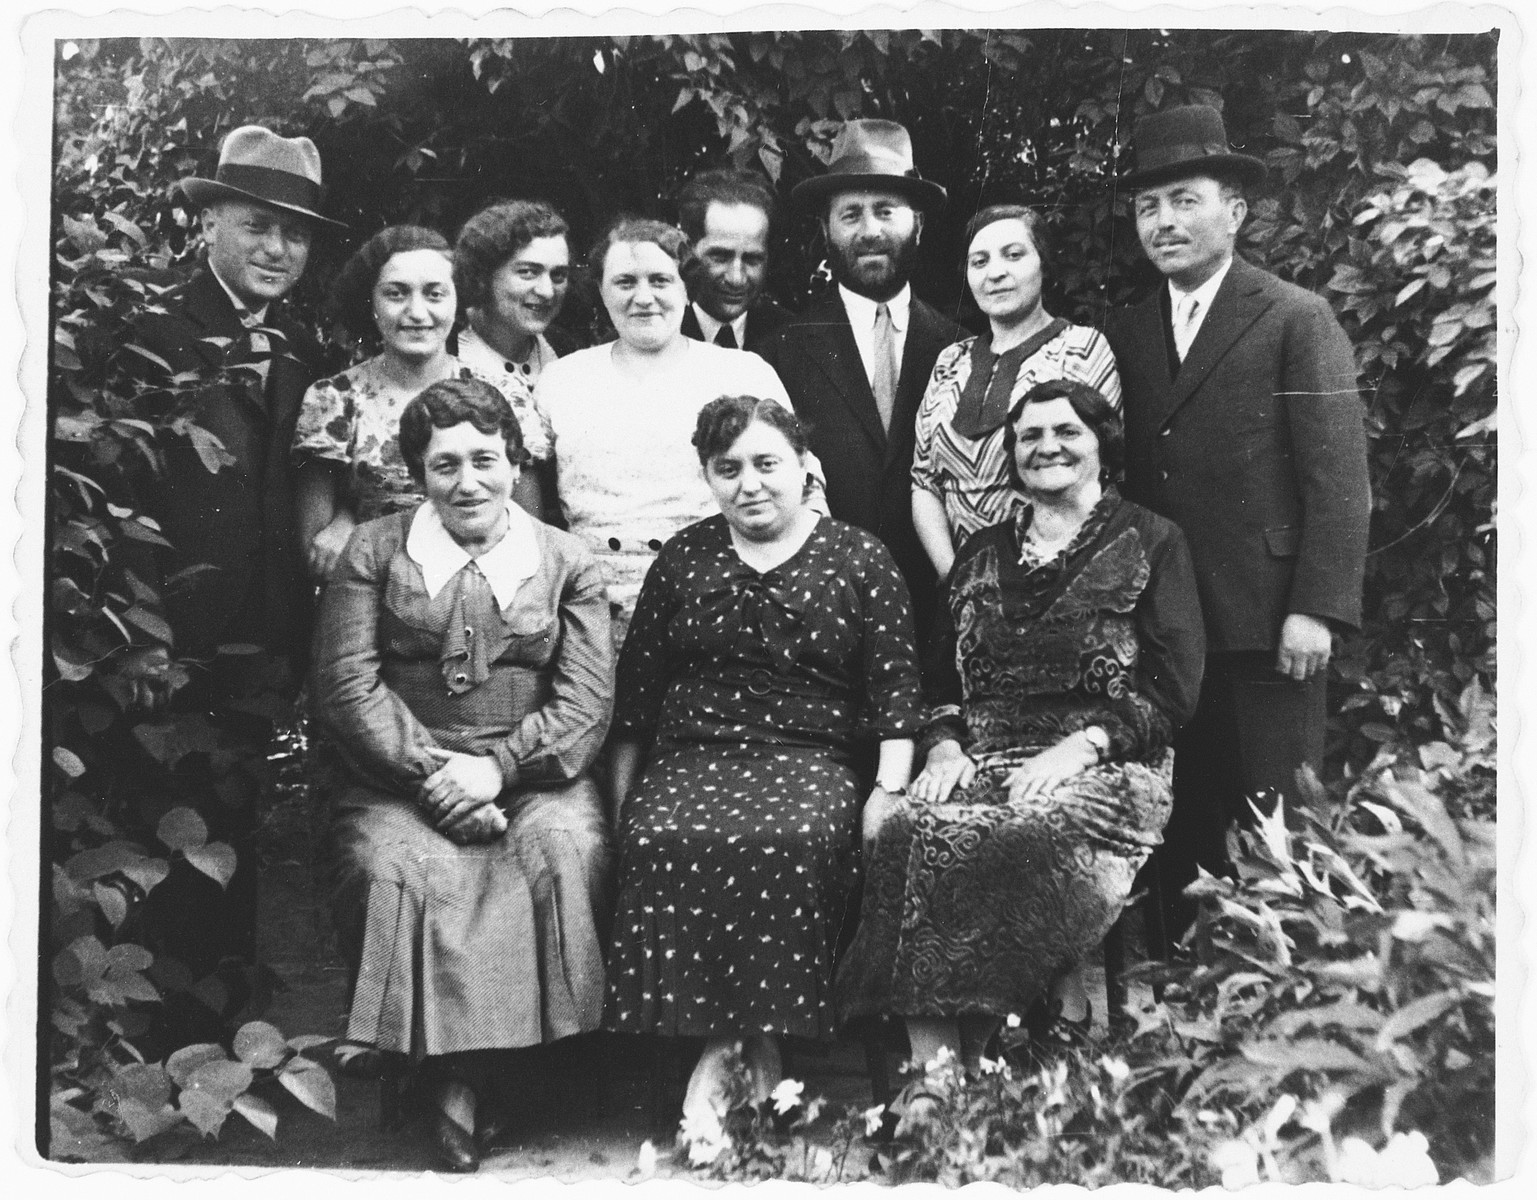 Group portrait of members of the extended Jam family in Rzeszow, Poland.  Among those pictured are Isaac and Ida (Jam) Friedberg (back row, center, Isaac is bareheaded and Ida is wearing a white blouse), and Dora, Regina, Efraim, Josef, and Memel Jam.